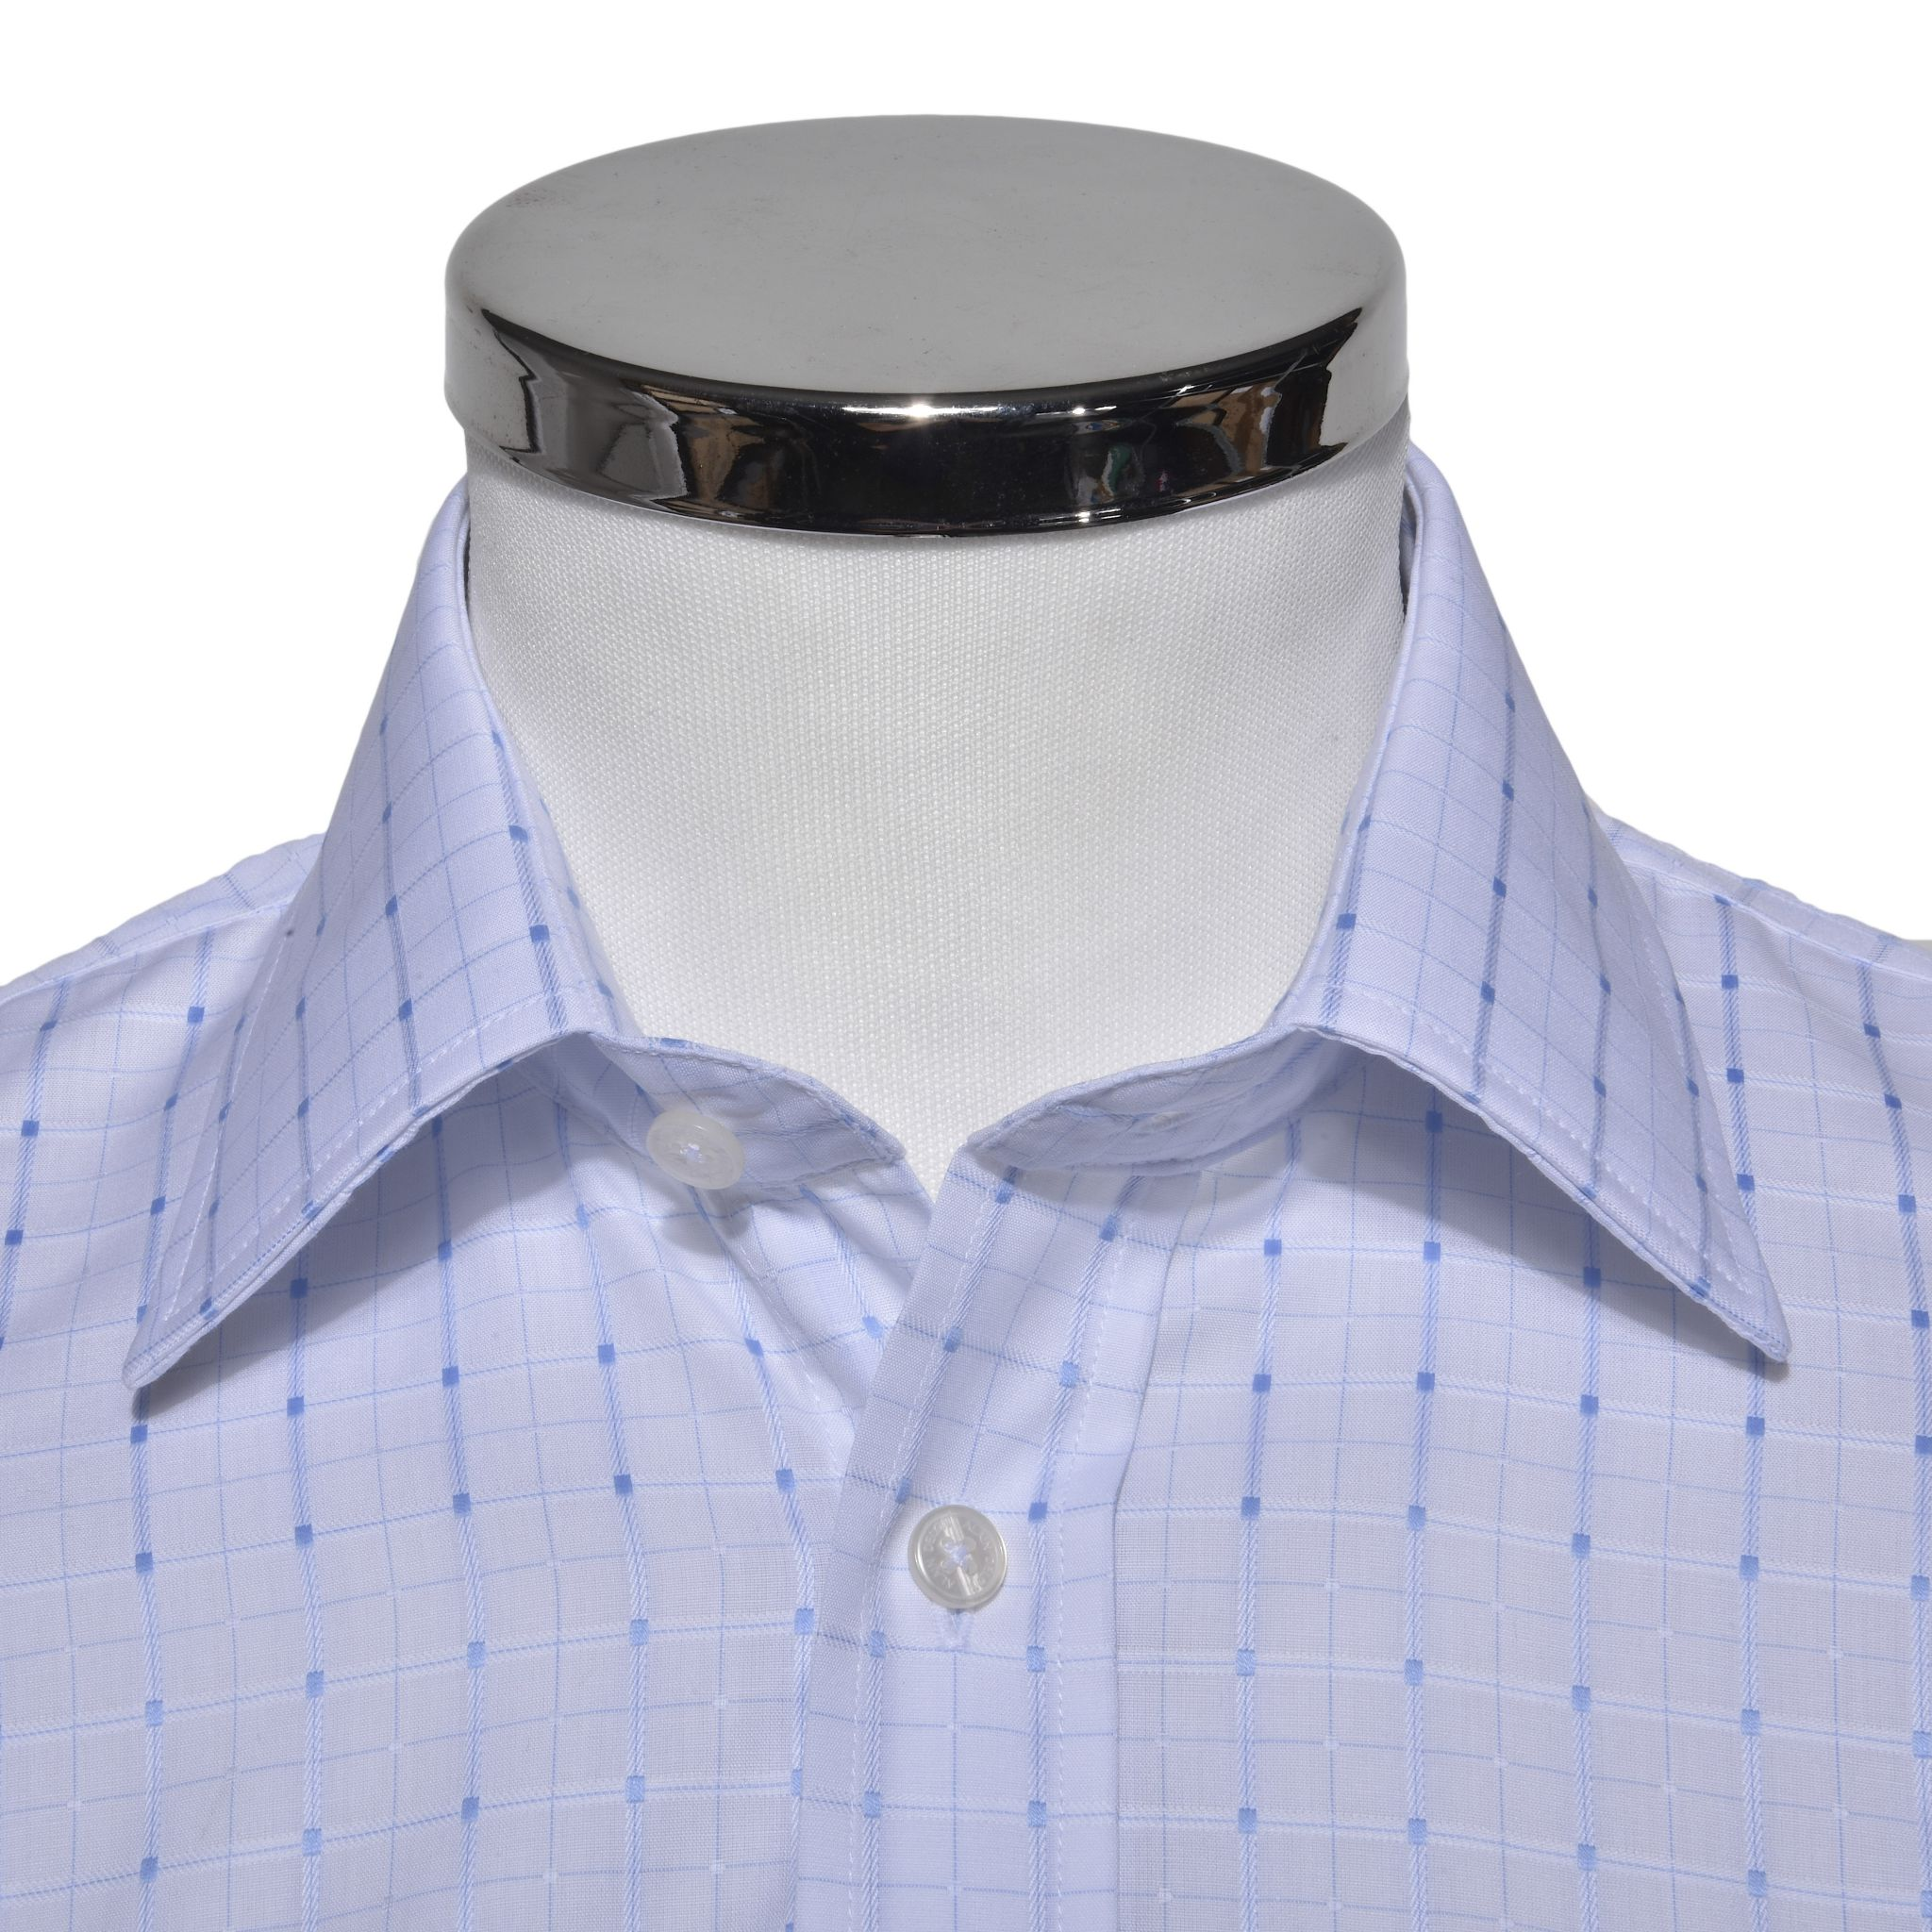 df8a5c022f31 LIMITED EDITION patterned Slim Fit shirt - Shirts - E-shop ...